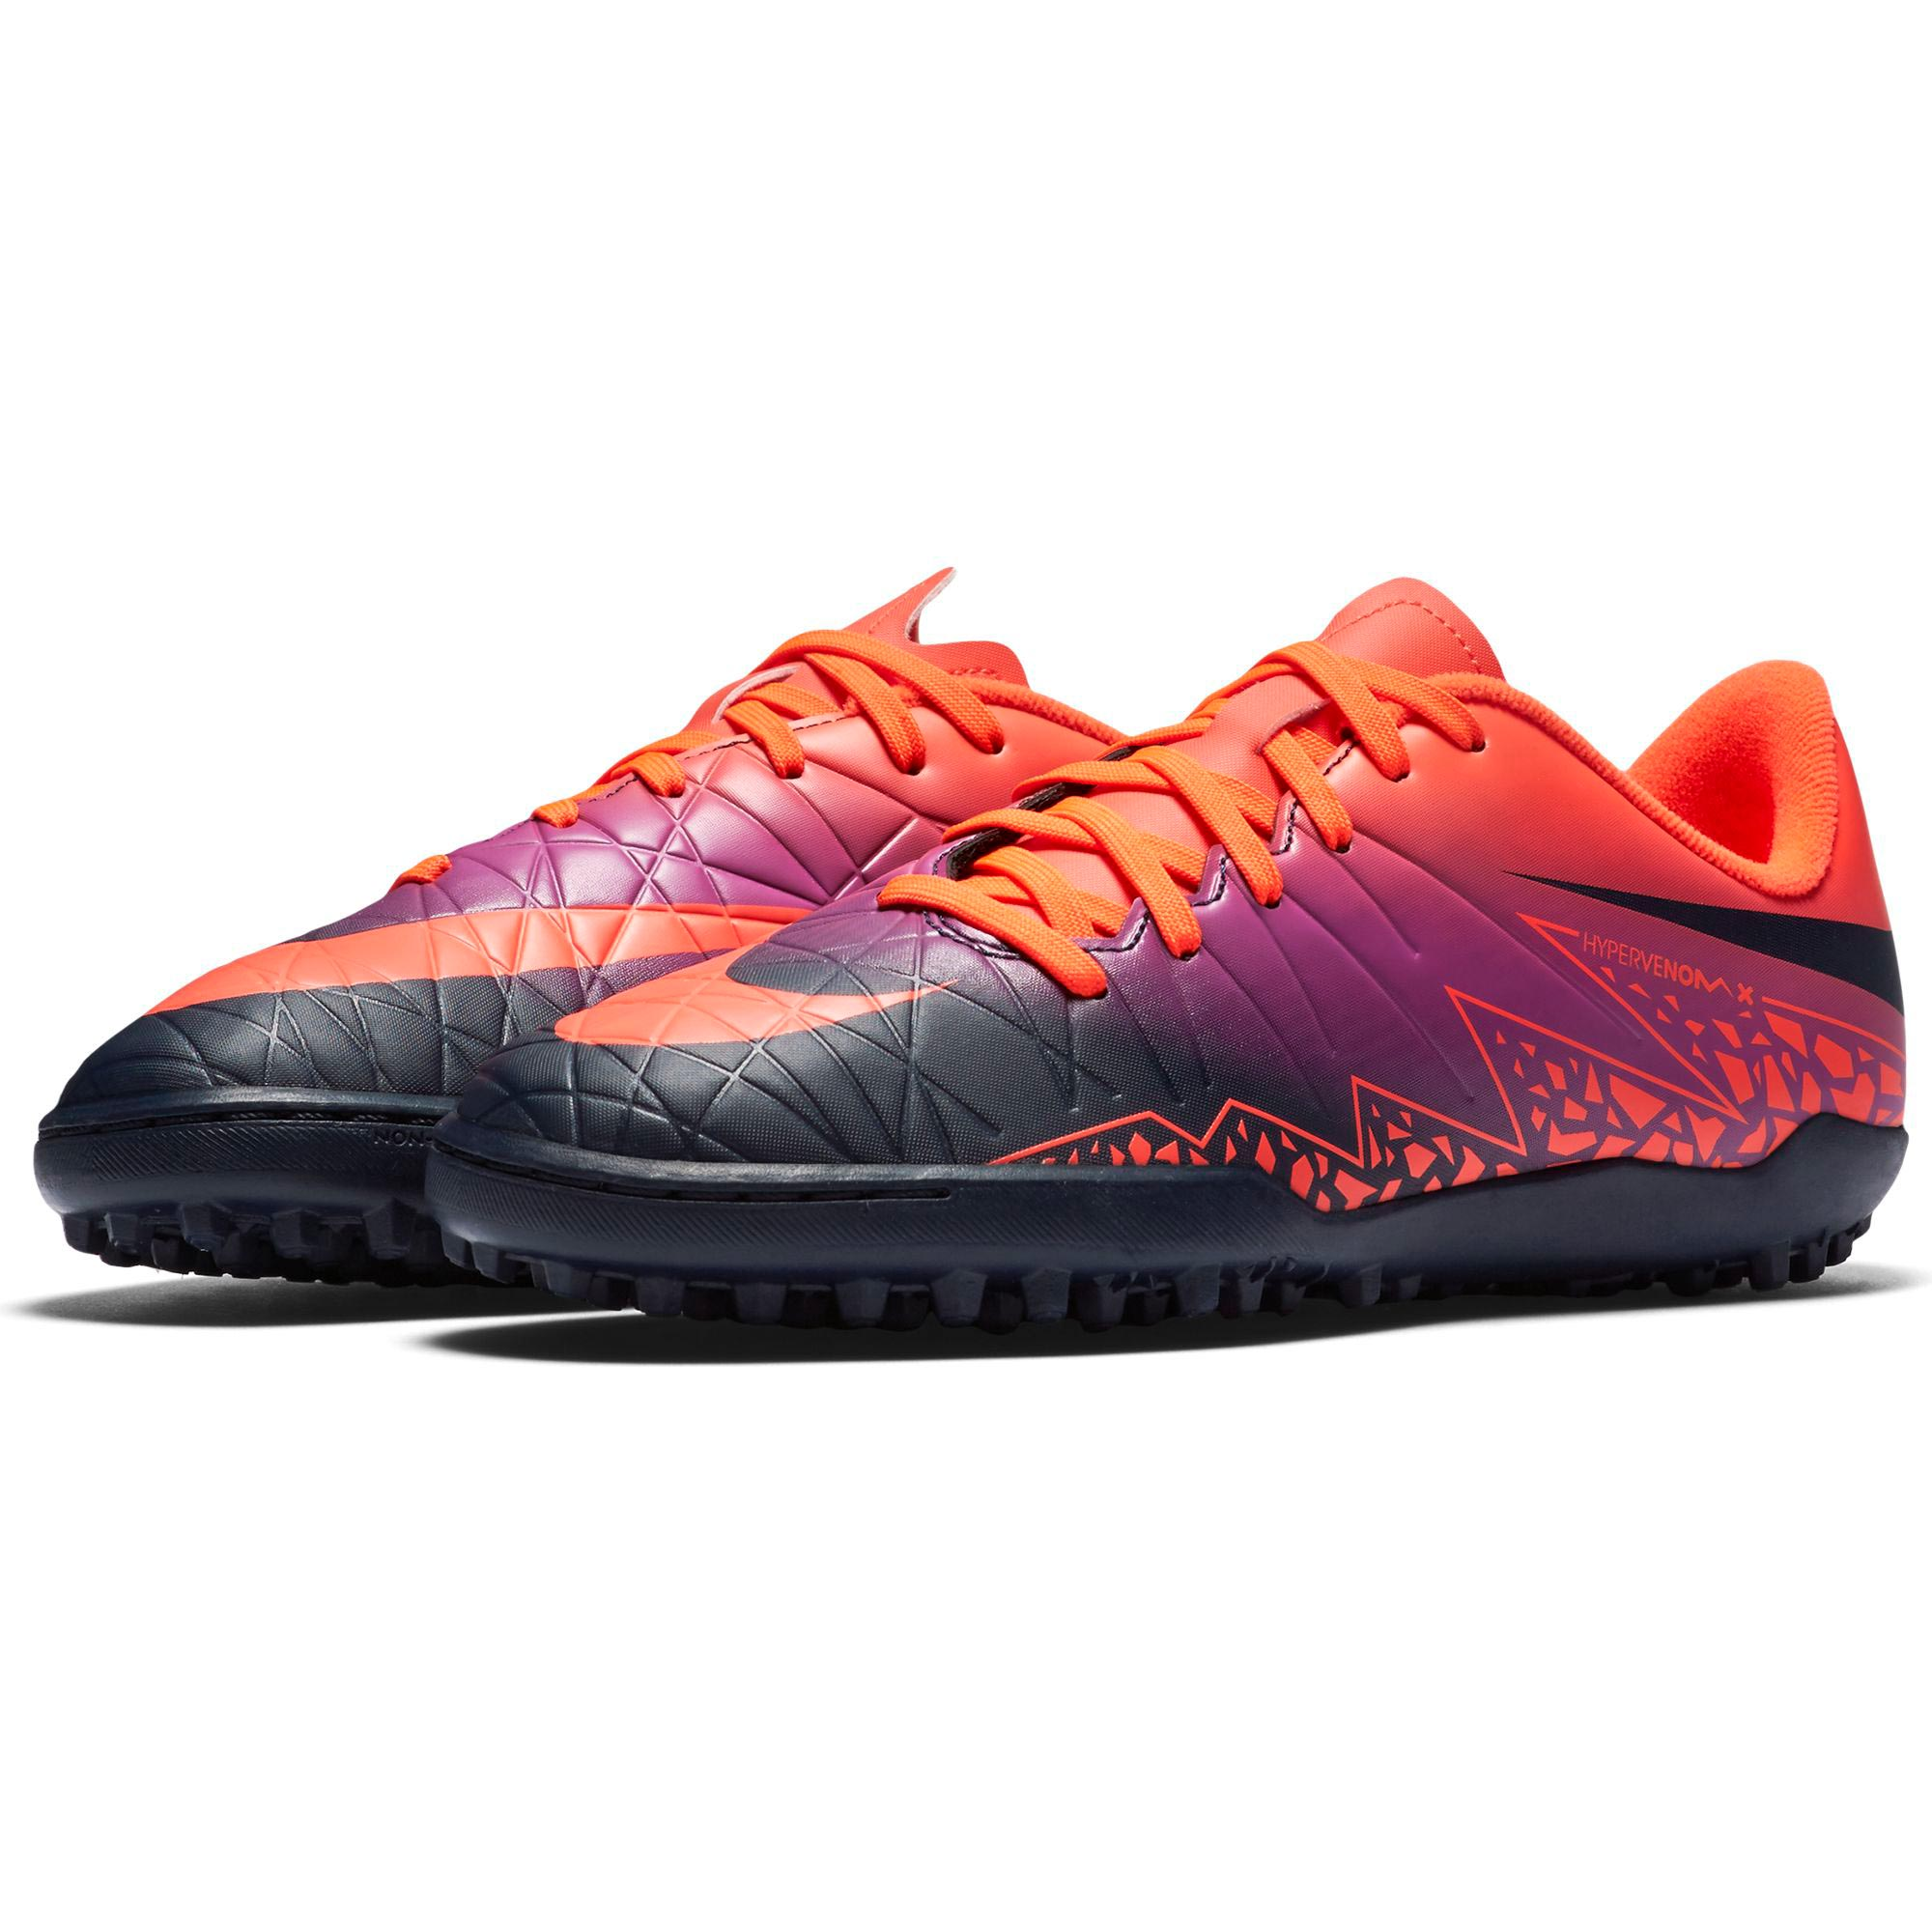 57e174cf532d Nike Hypervenom Phelon II Floodlights Astroturf Kids Football Boots Red  Image